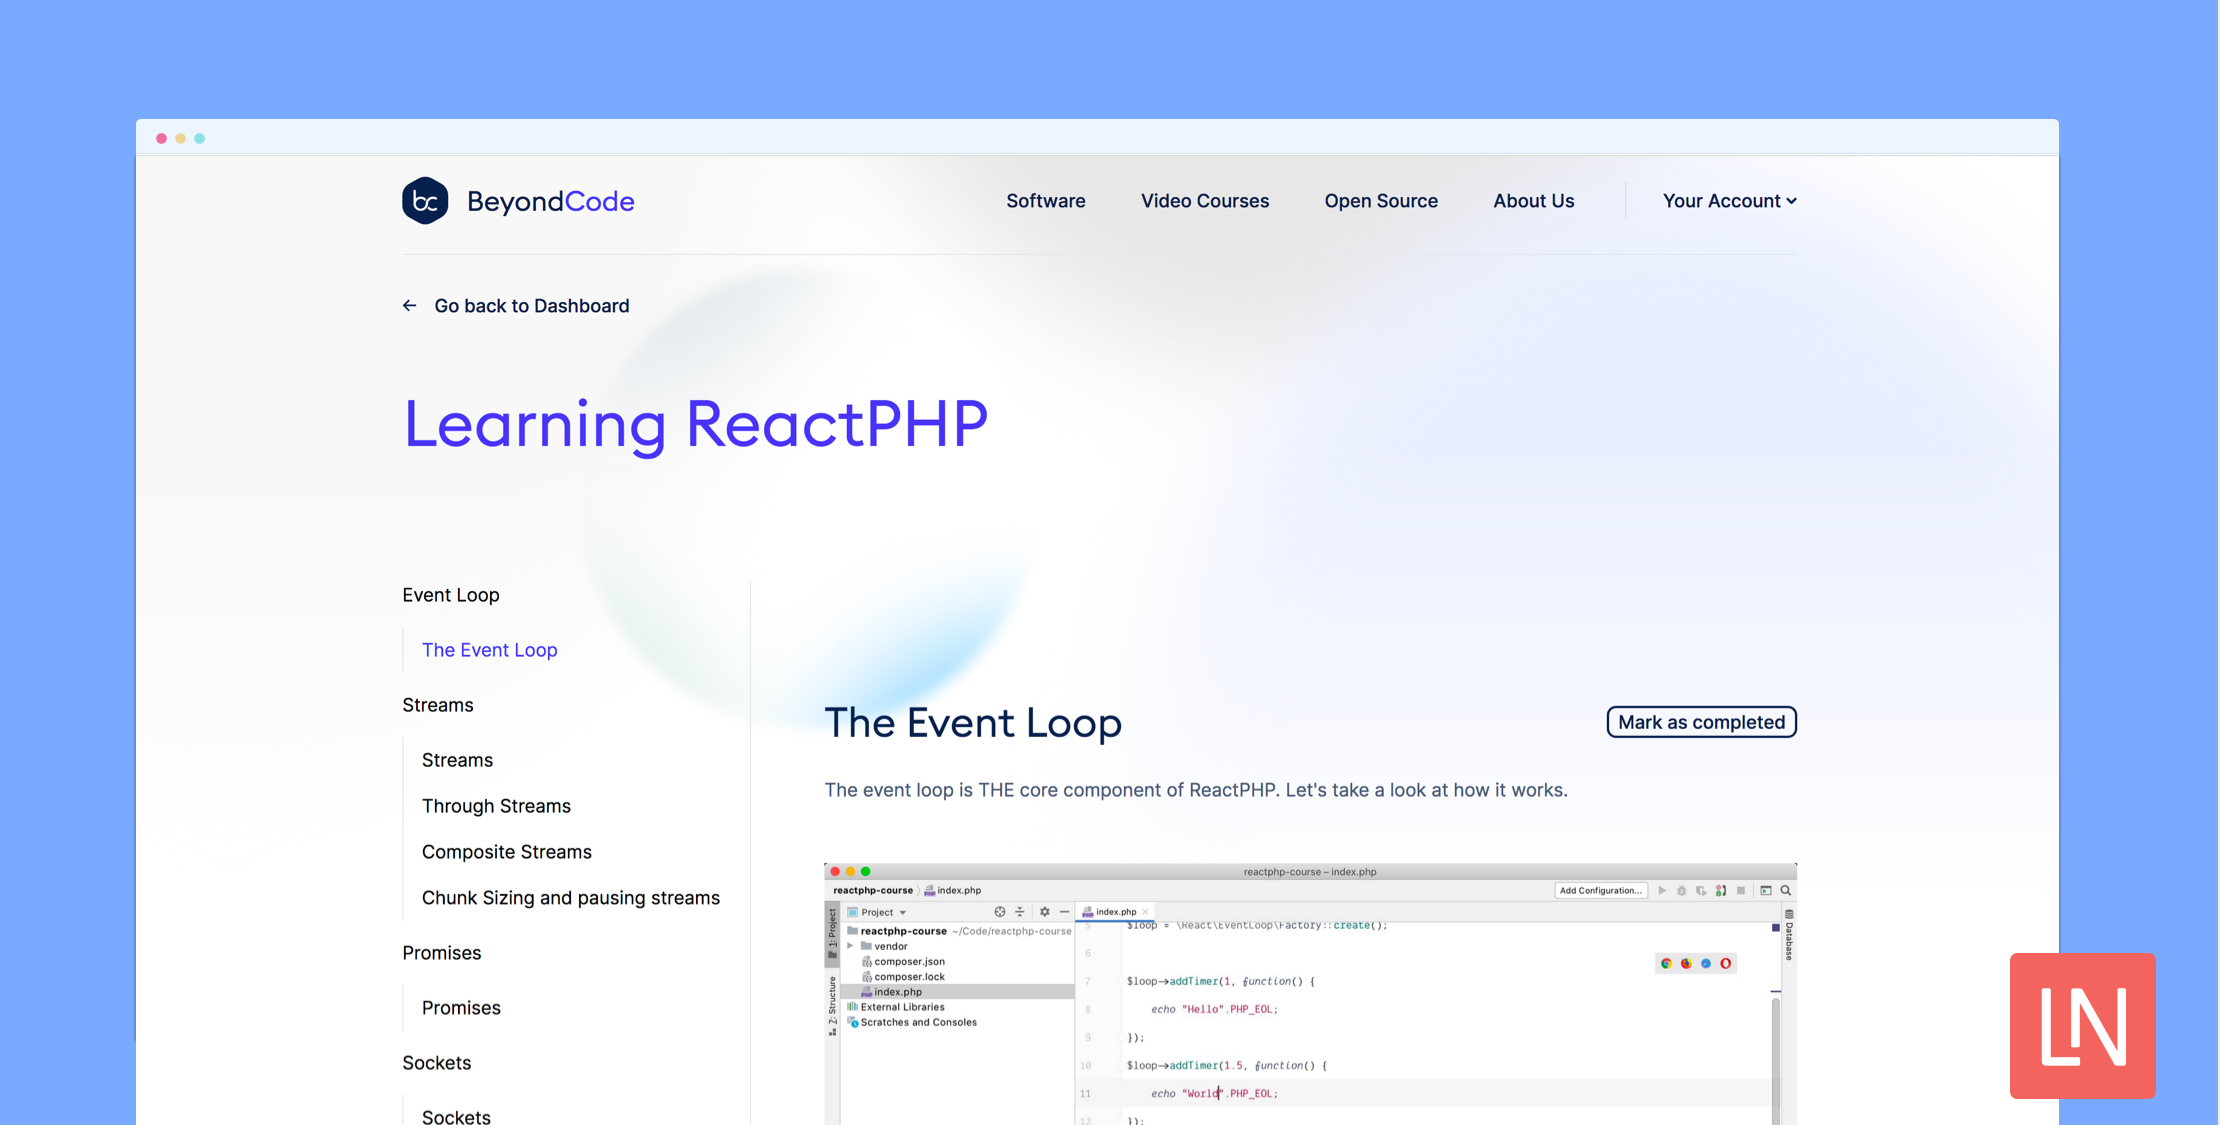 learning-reactphp-featured.png